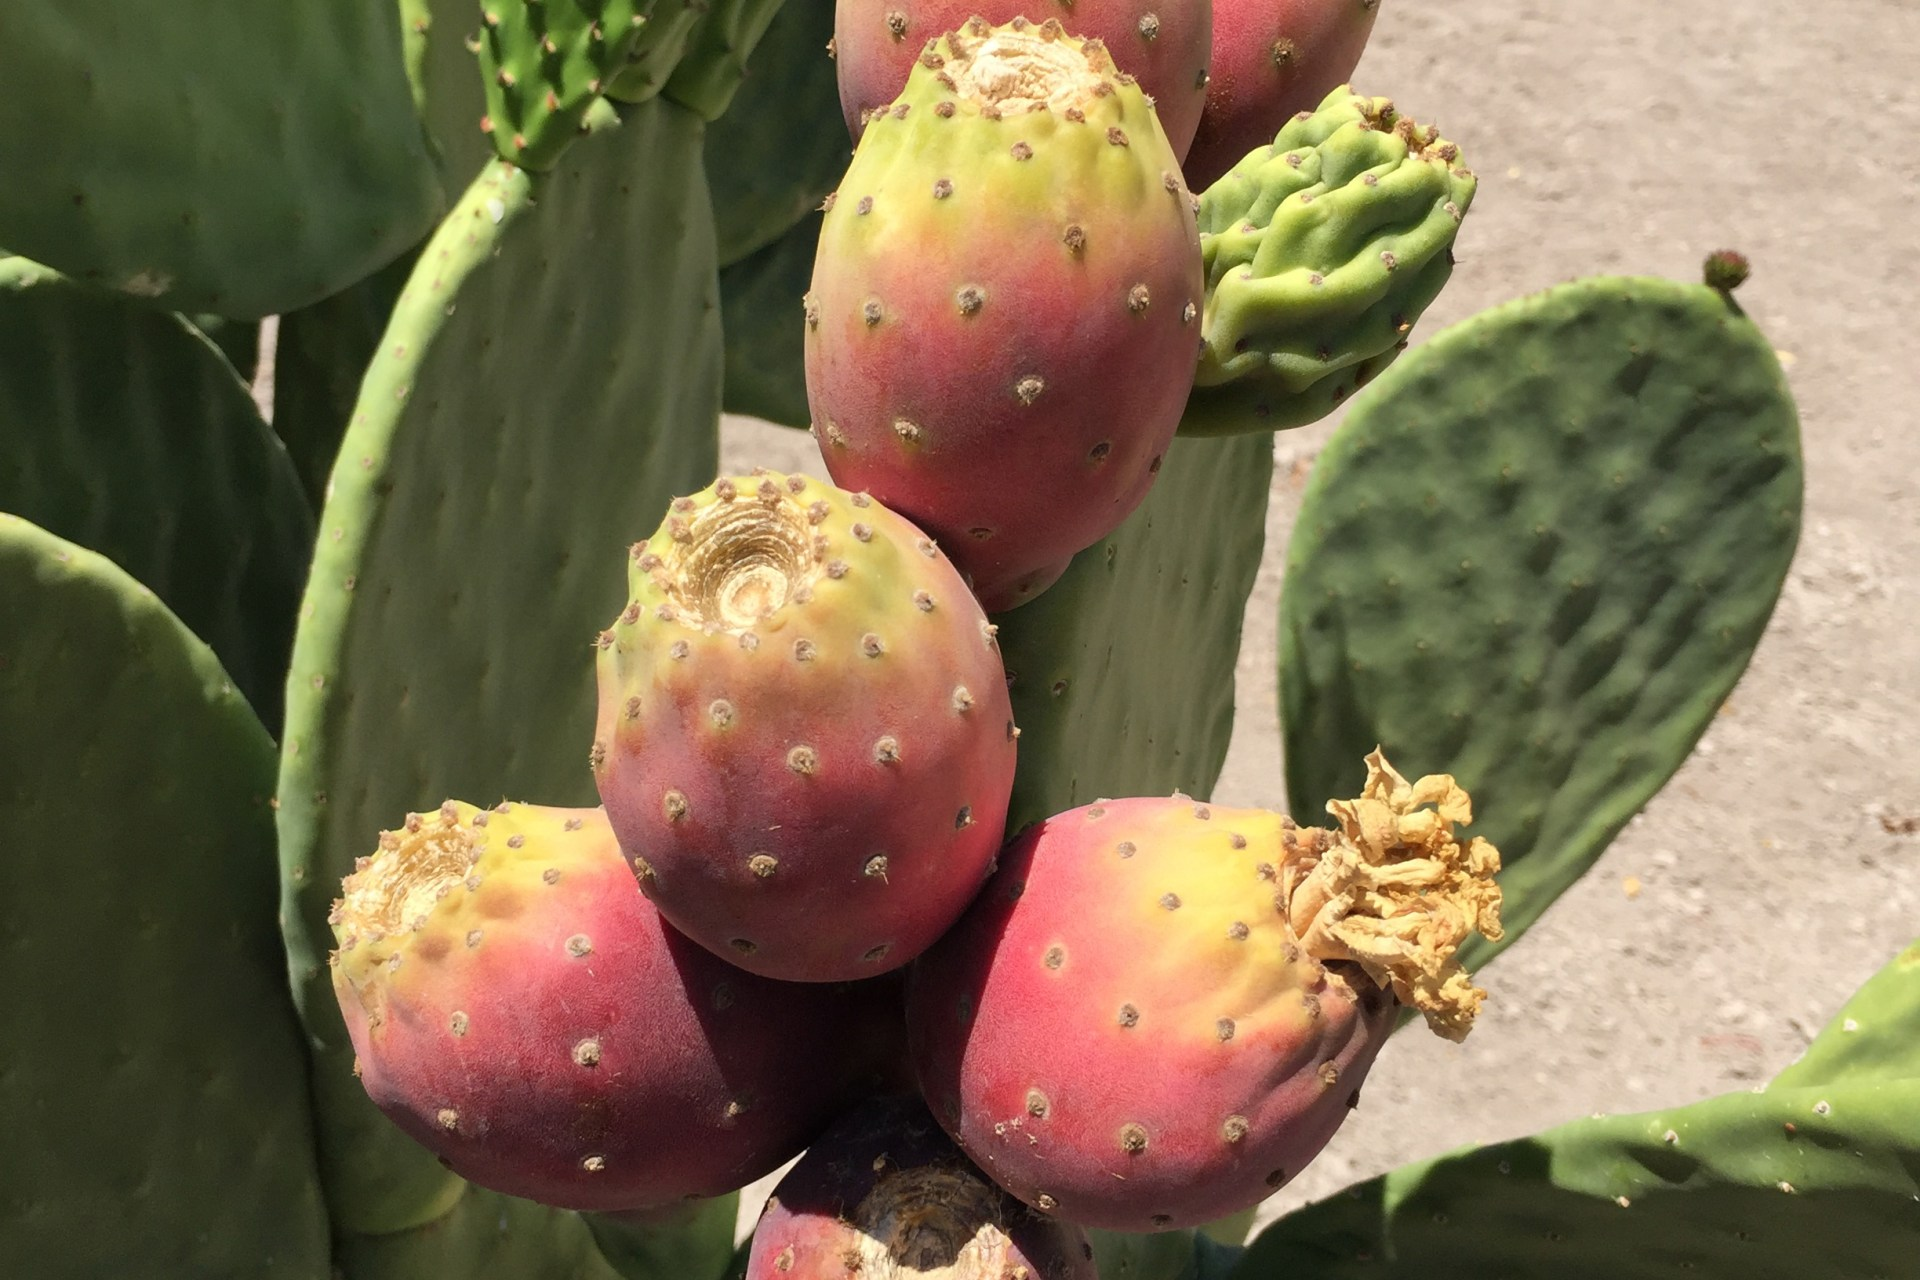 Among three cactus varieties researched by the University of Nevada, Reno as drought-tolerant crops for biofuel, Opuntia ficus-indica produced the most fruit while using up to 80% less water than some traditional crops. Photo by John Cushman, University of Nevada, Reno.